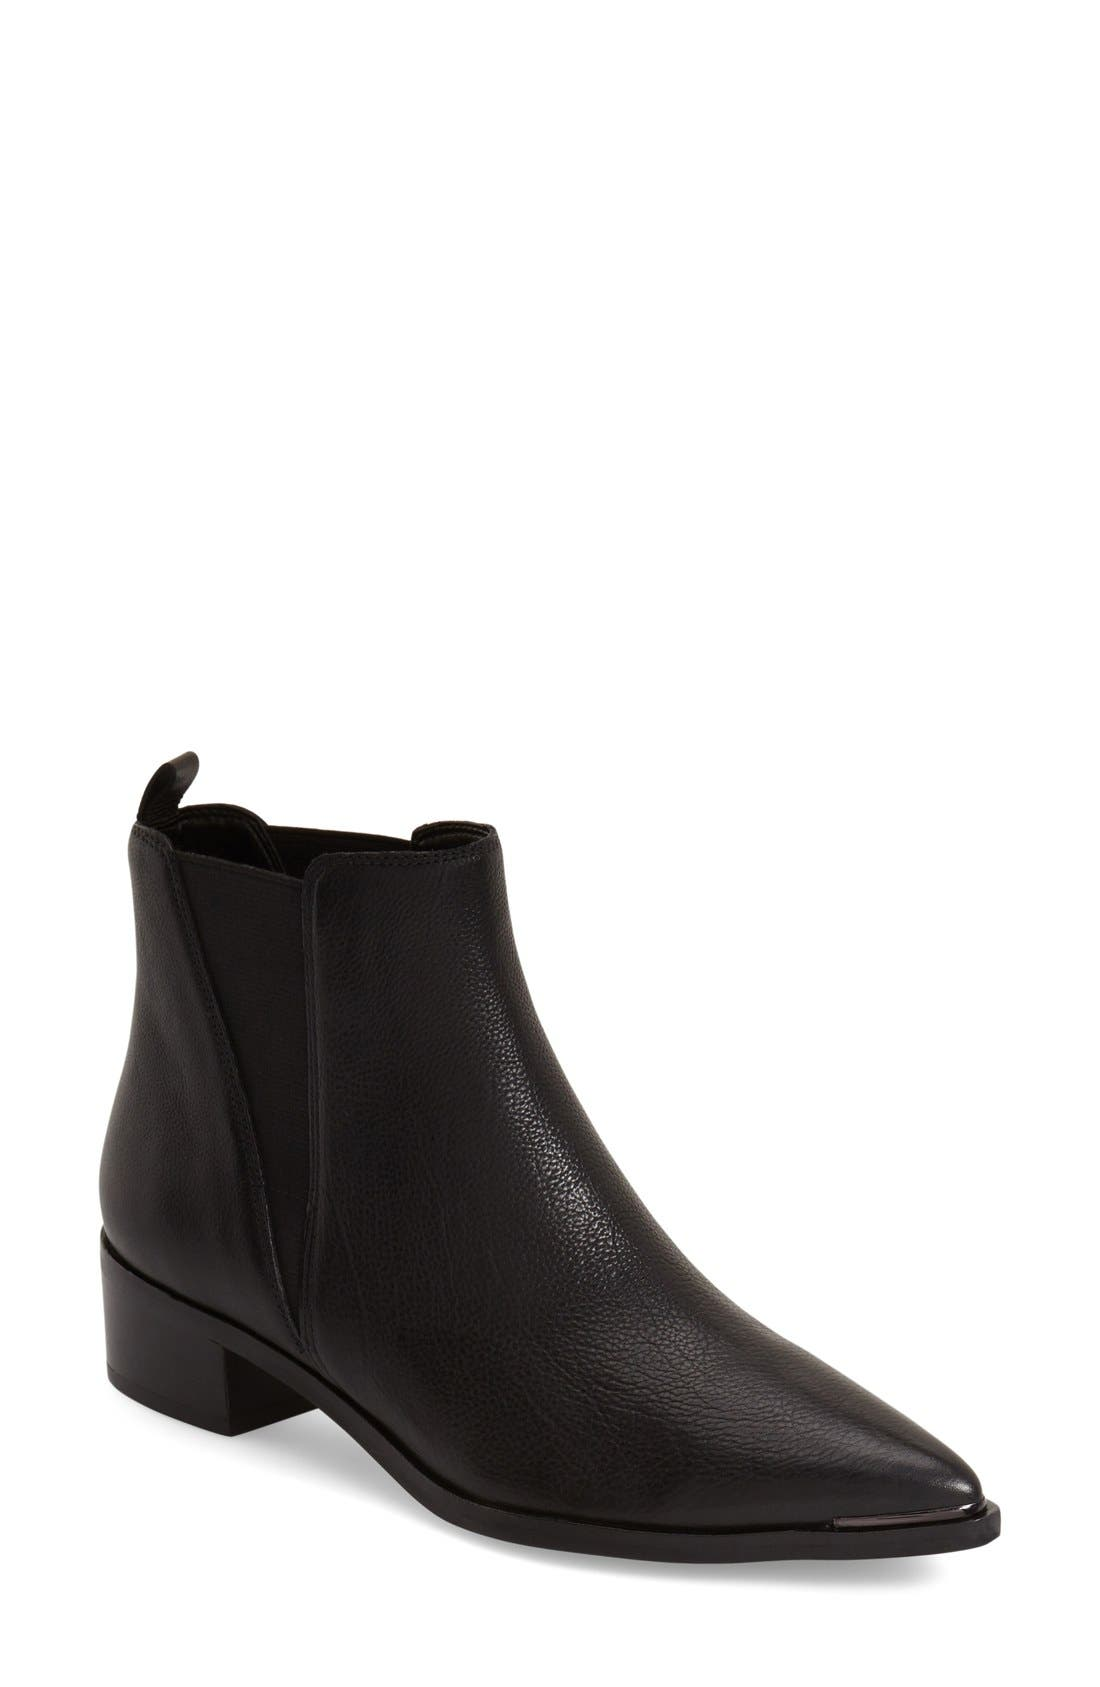 'Yale' Chelsea Boot,                         Main,                         color, Black Leather